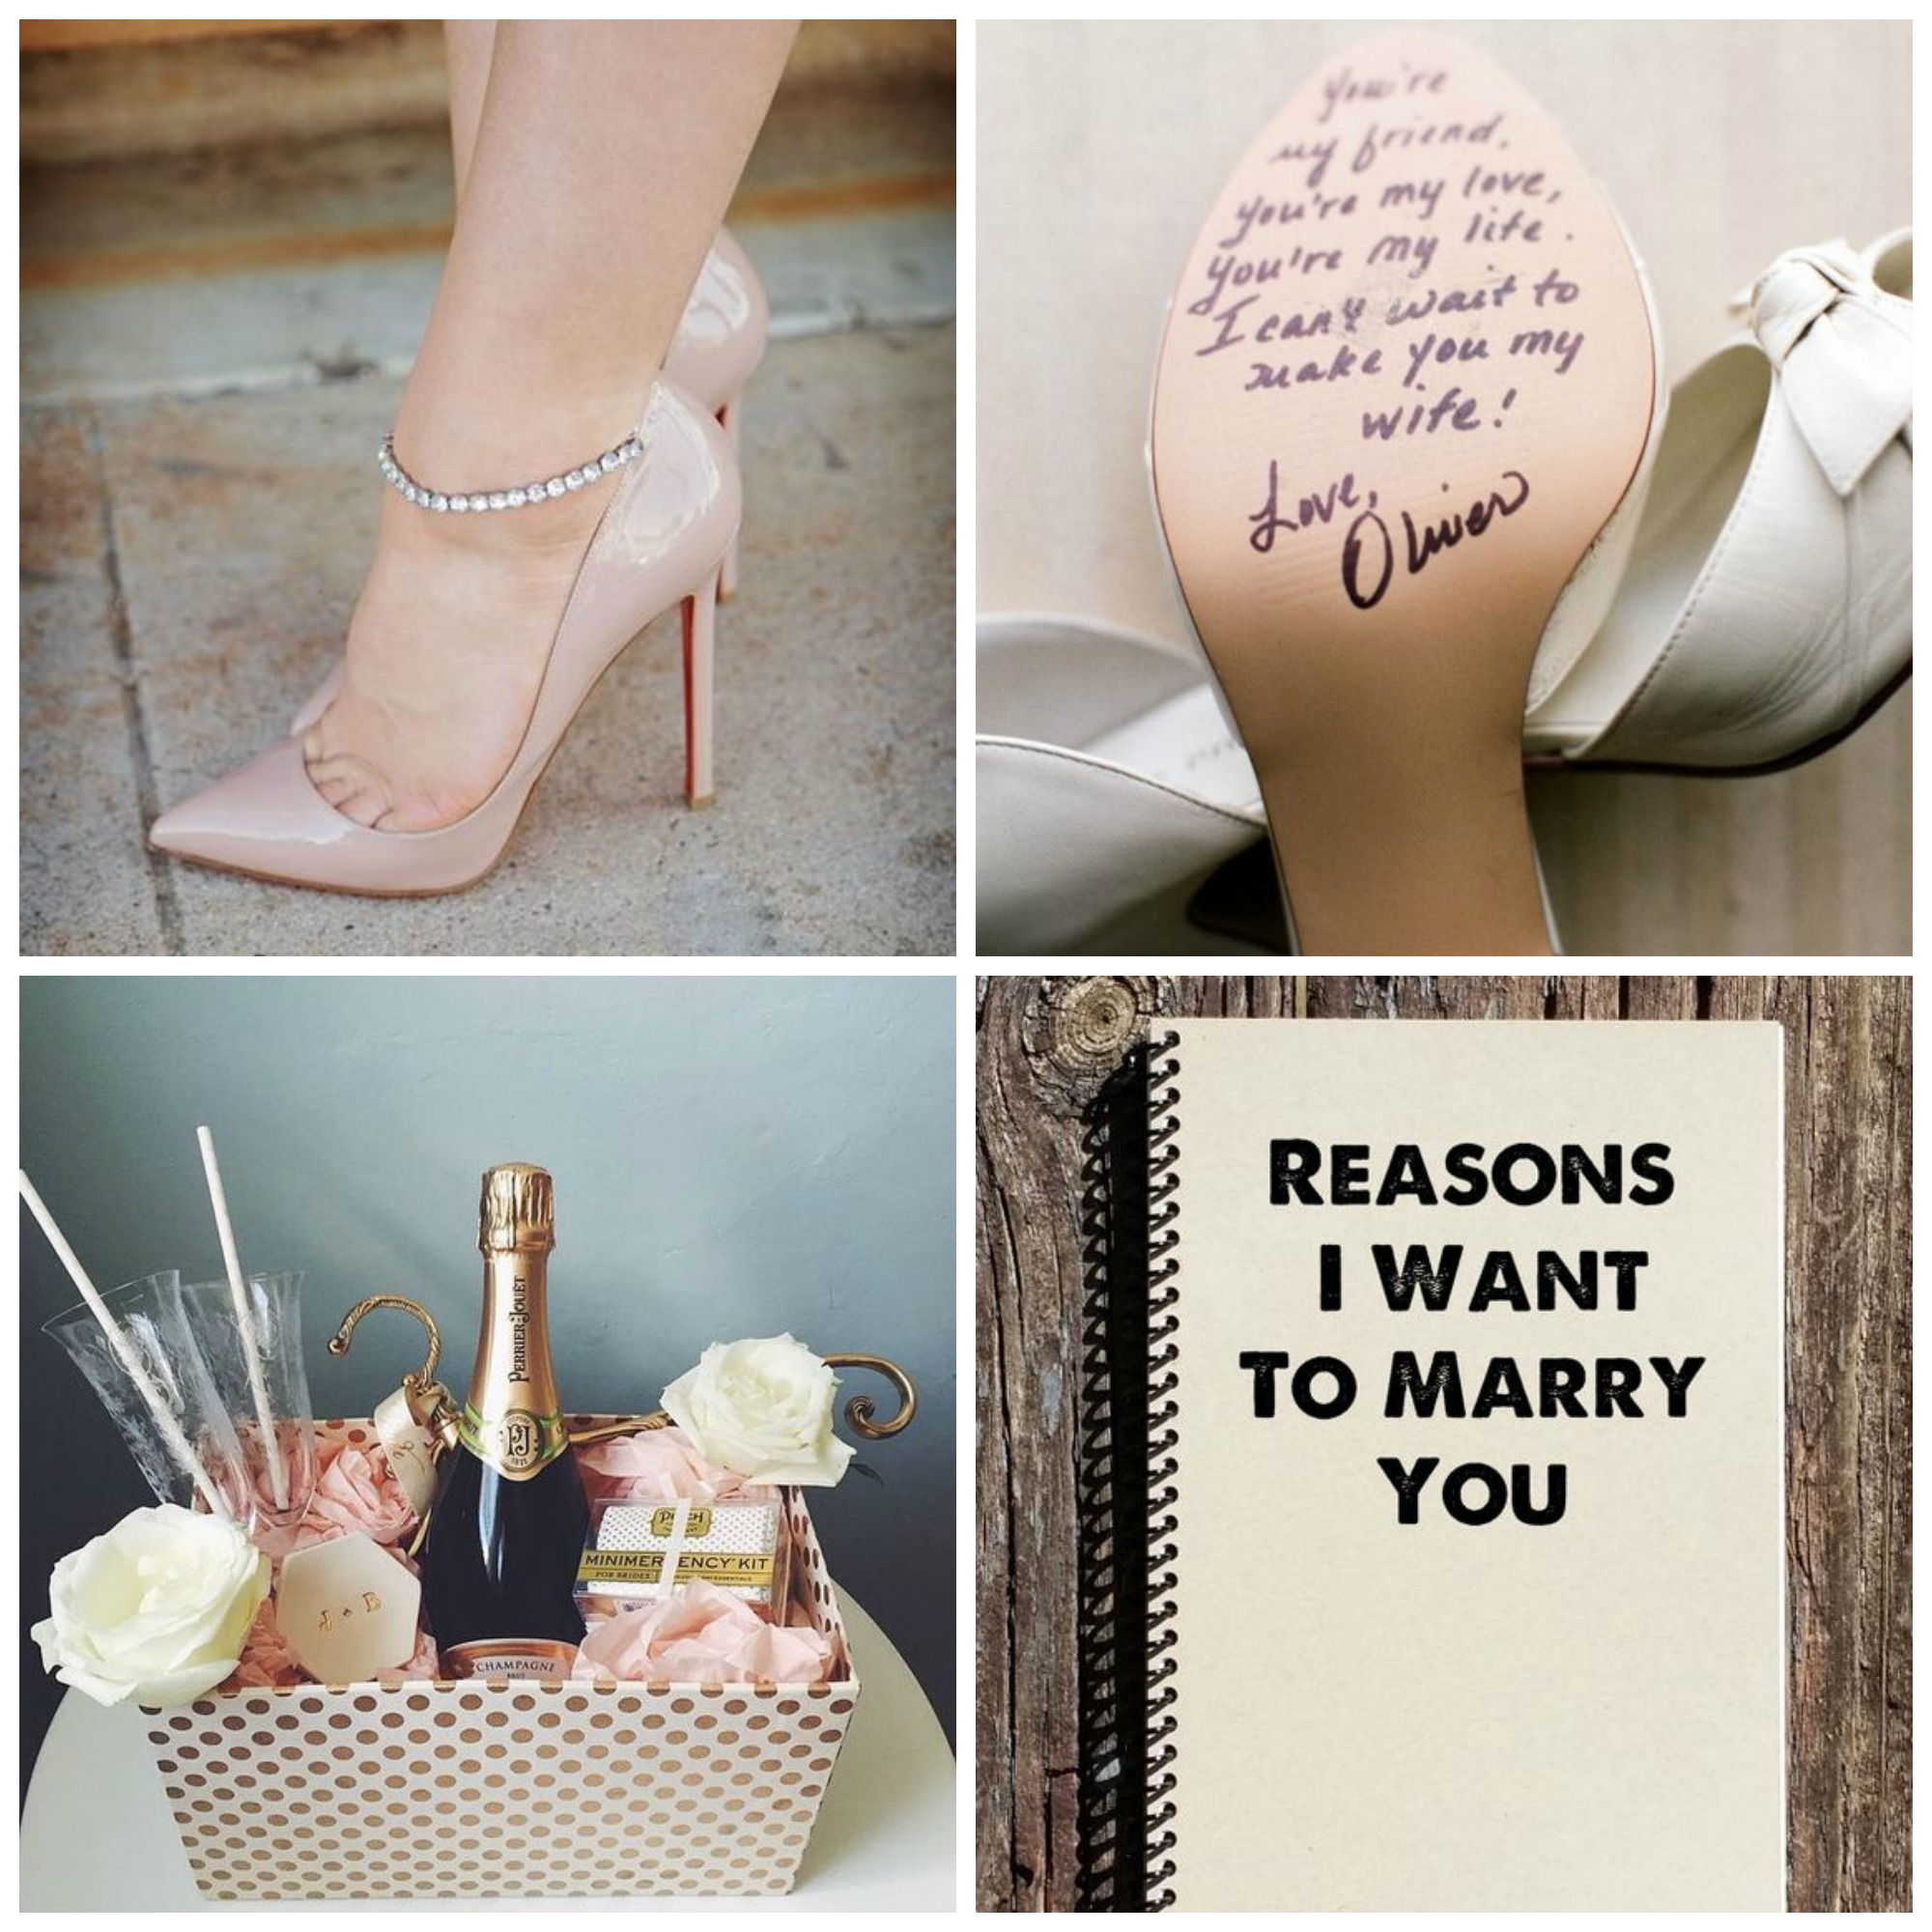 10 Cute Gift Ideas For A Bride bride groom gifts perfect details 4 2020